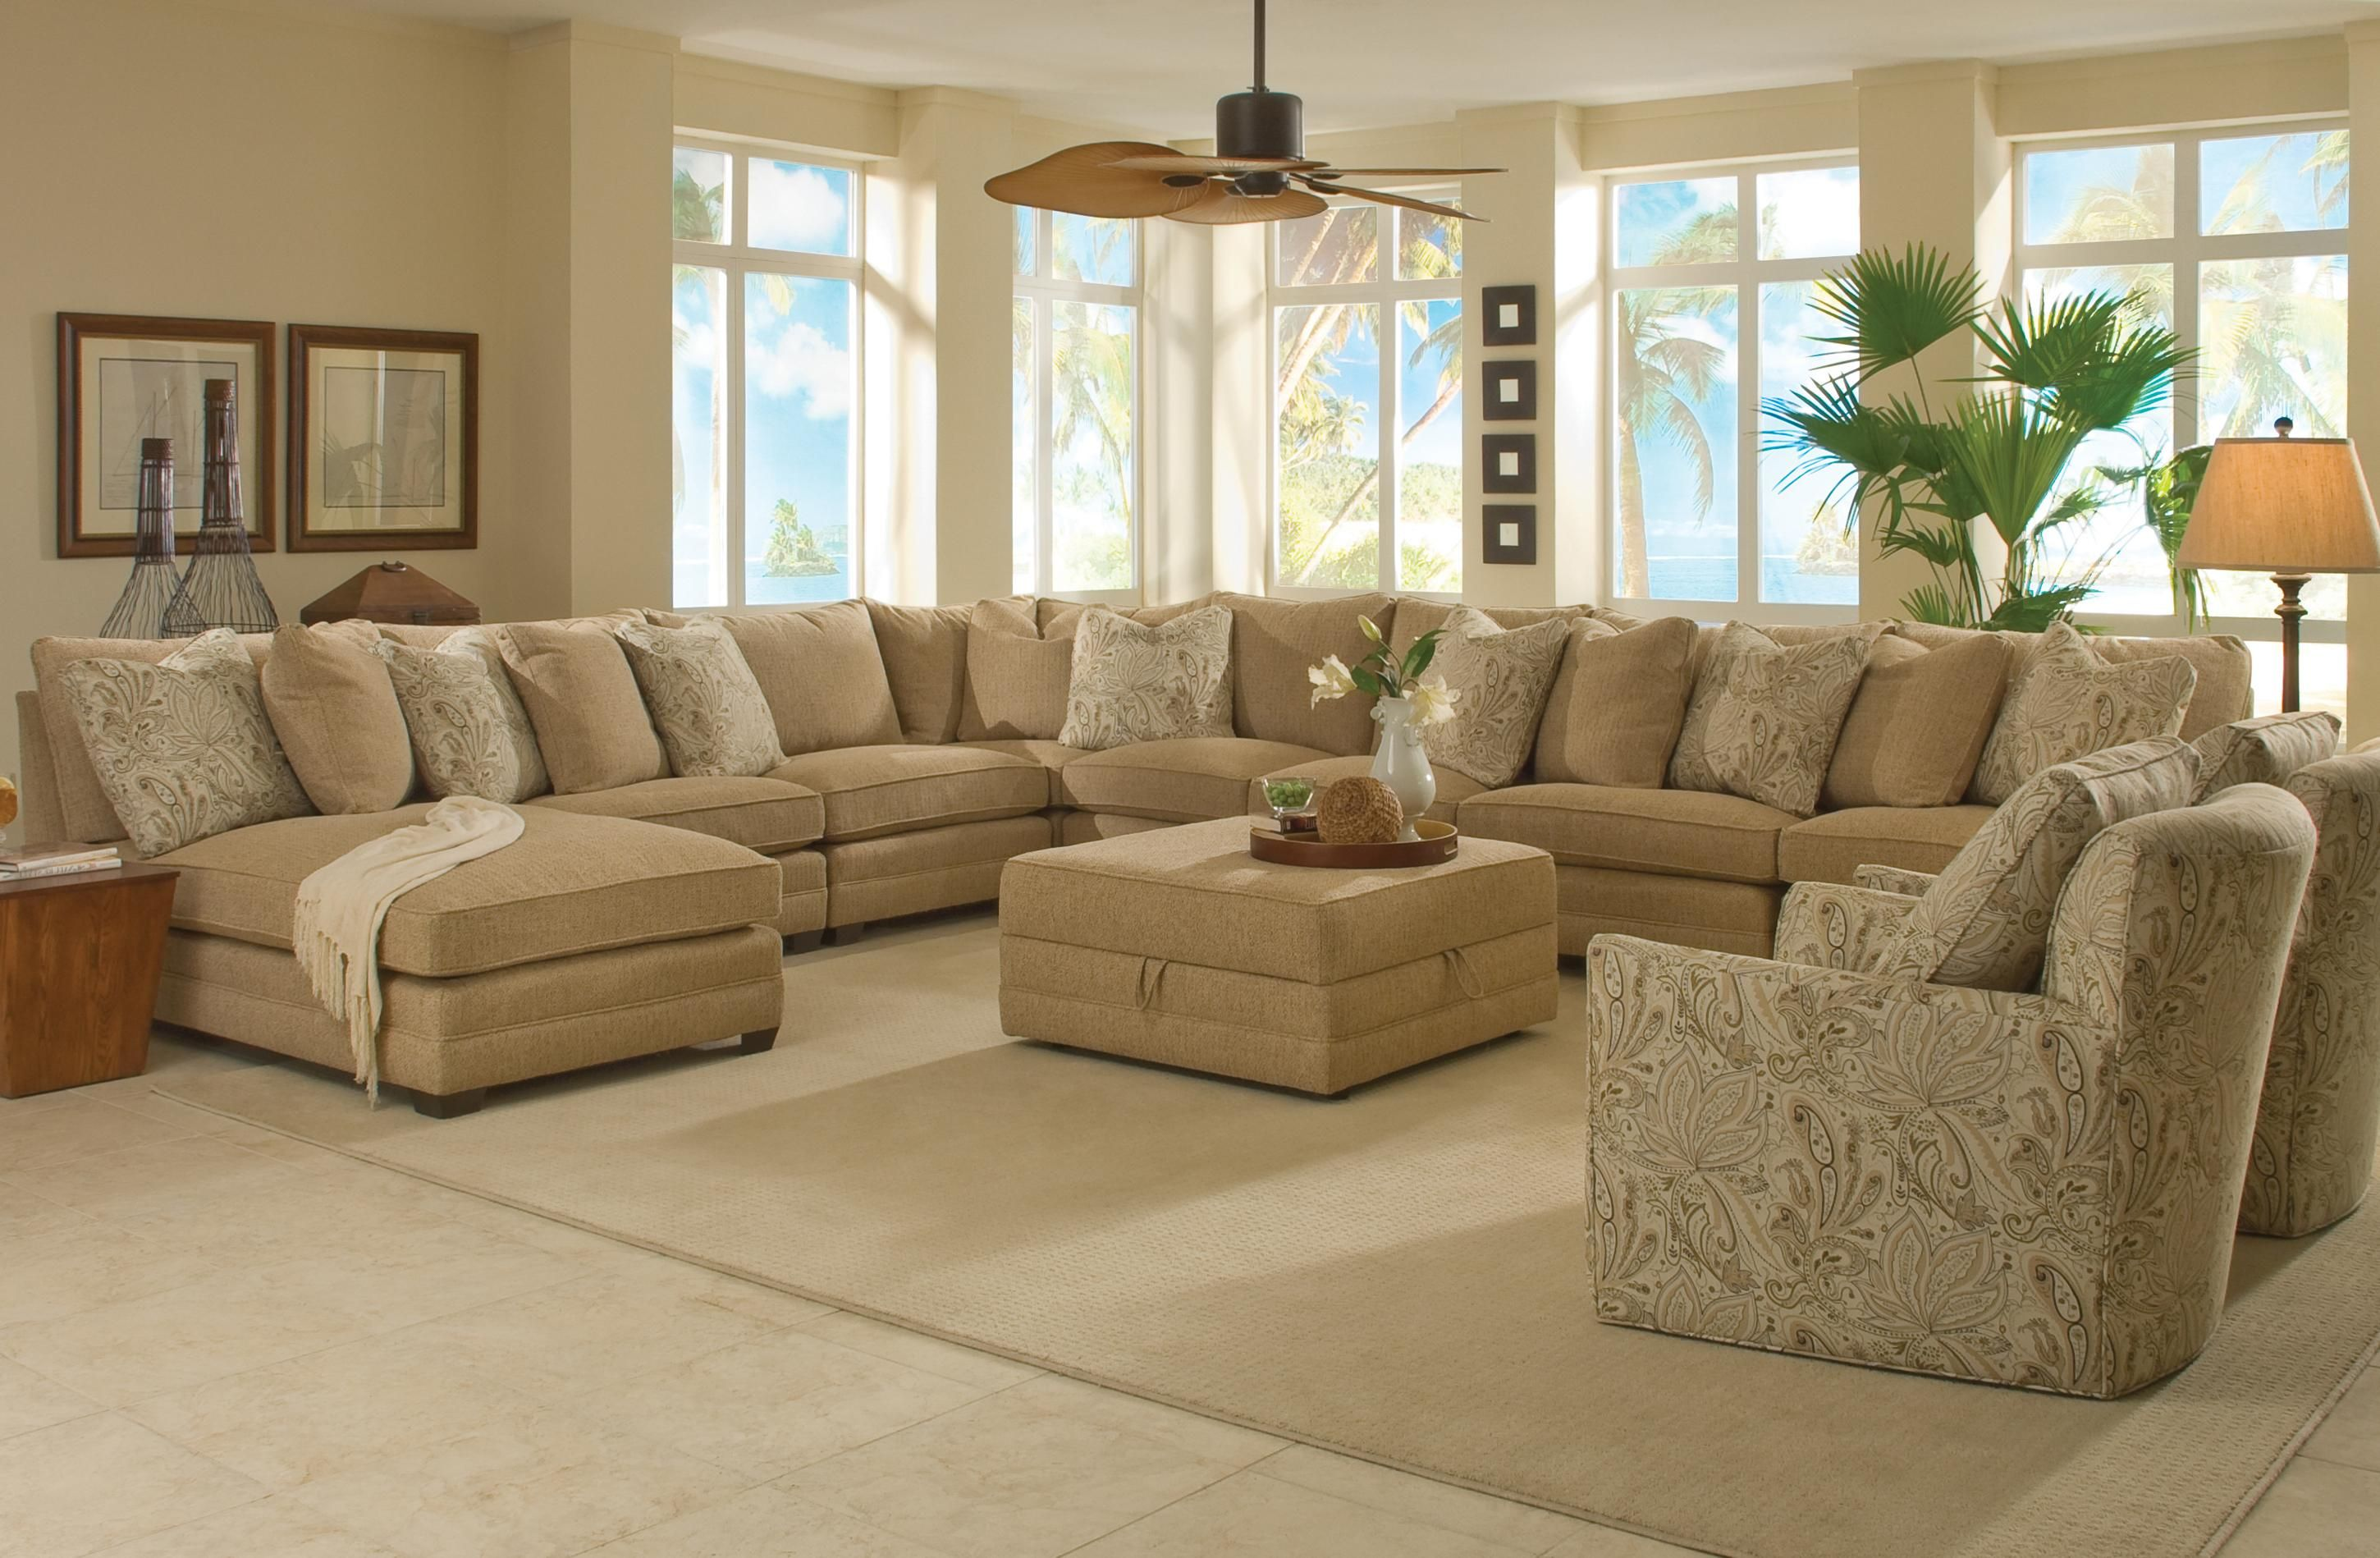 Pin By Clace On Sectional Sofas Living Room In 2021 Sectional Sofas Living Room Large Sectional Sofa Living Room Sectional